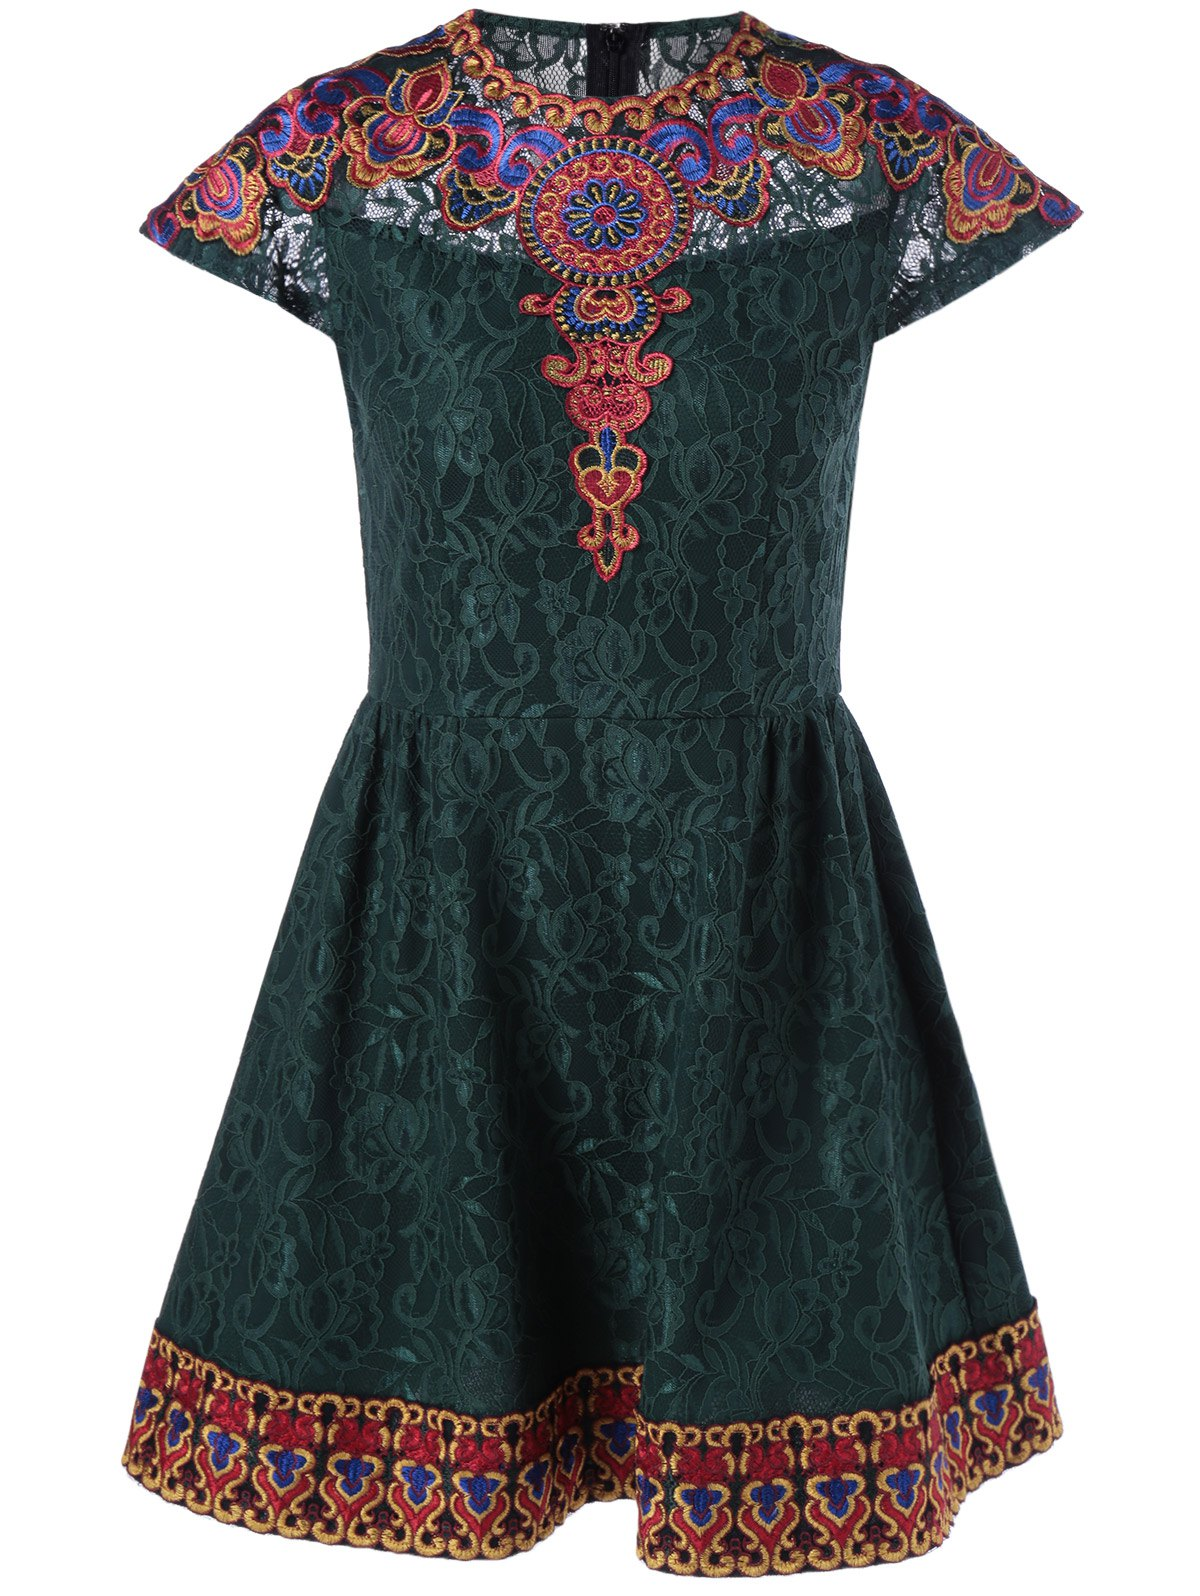 Ethnic Style Embroidered Lace Mini Dress